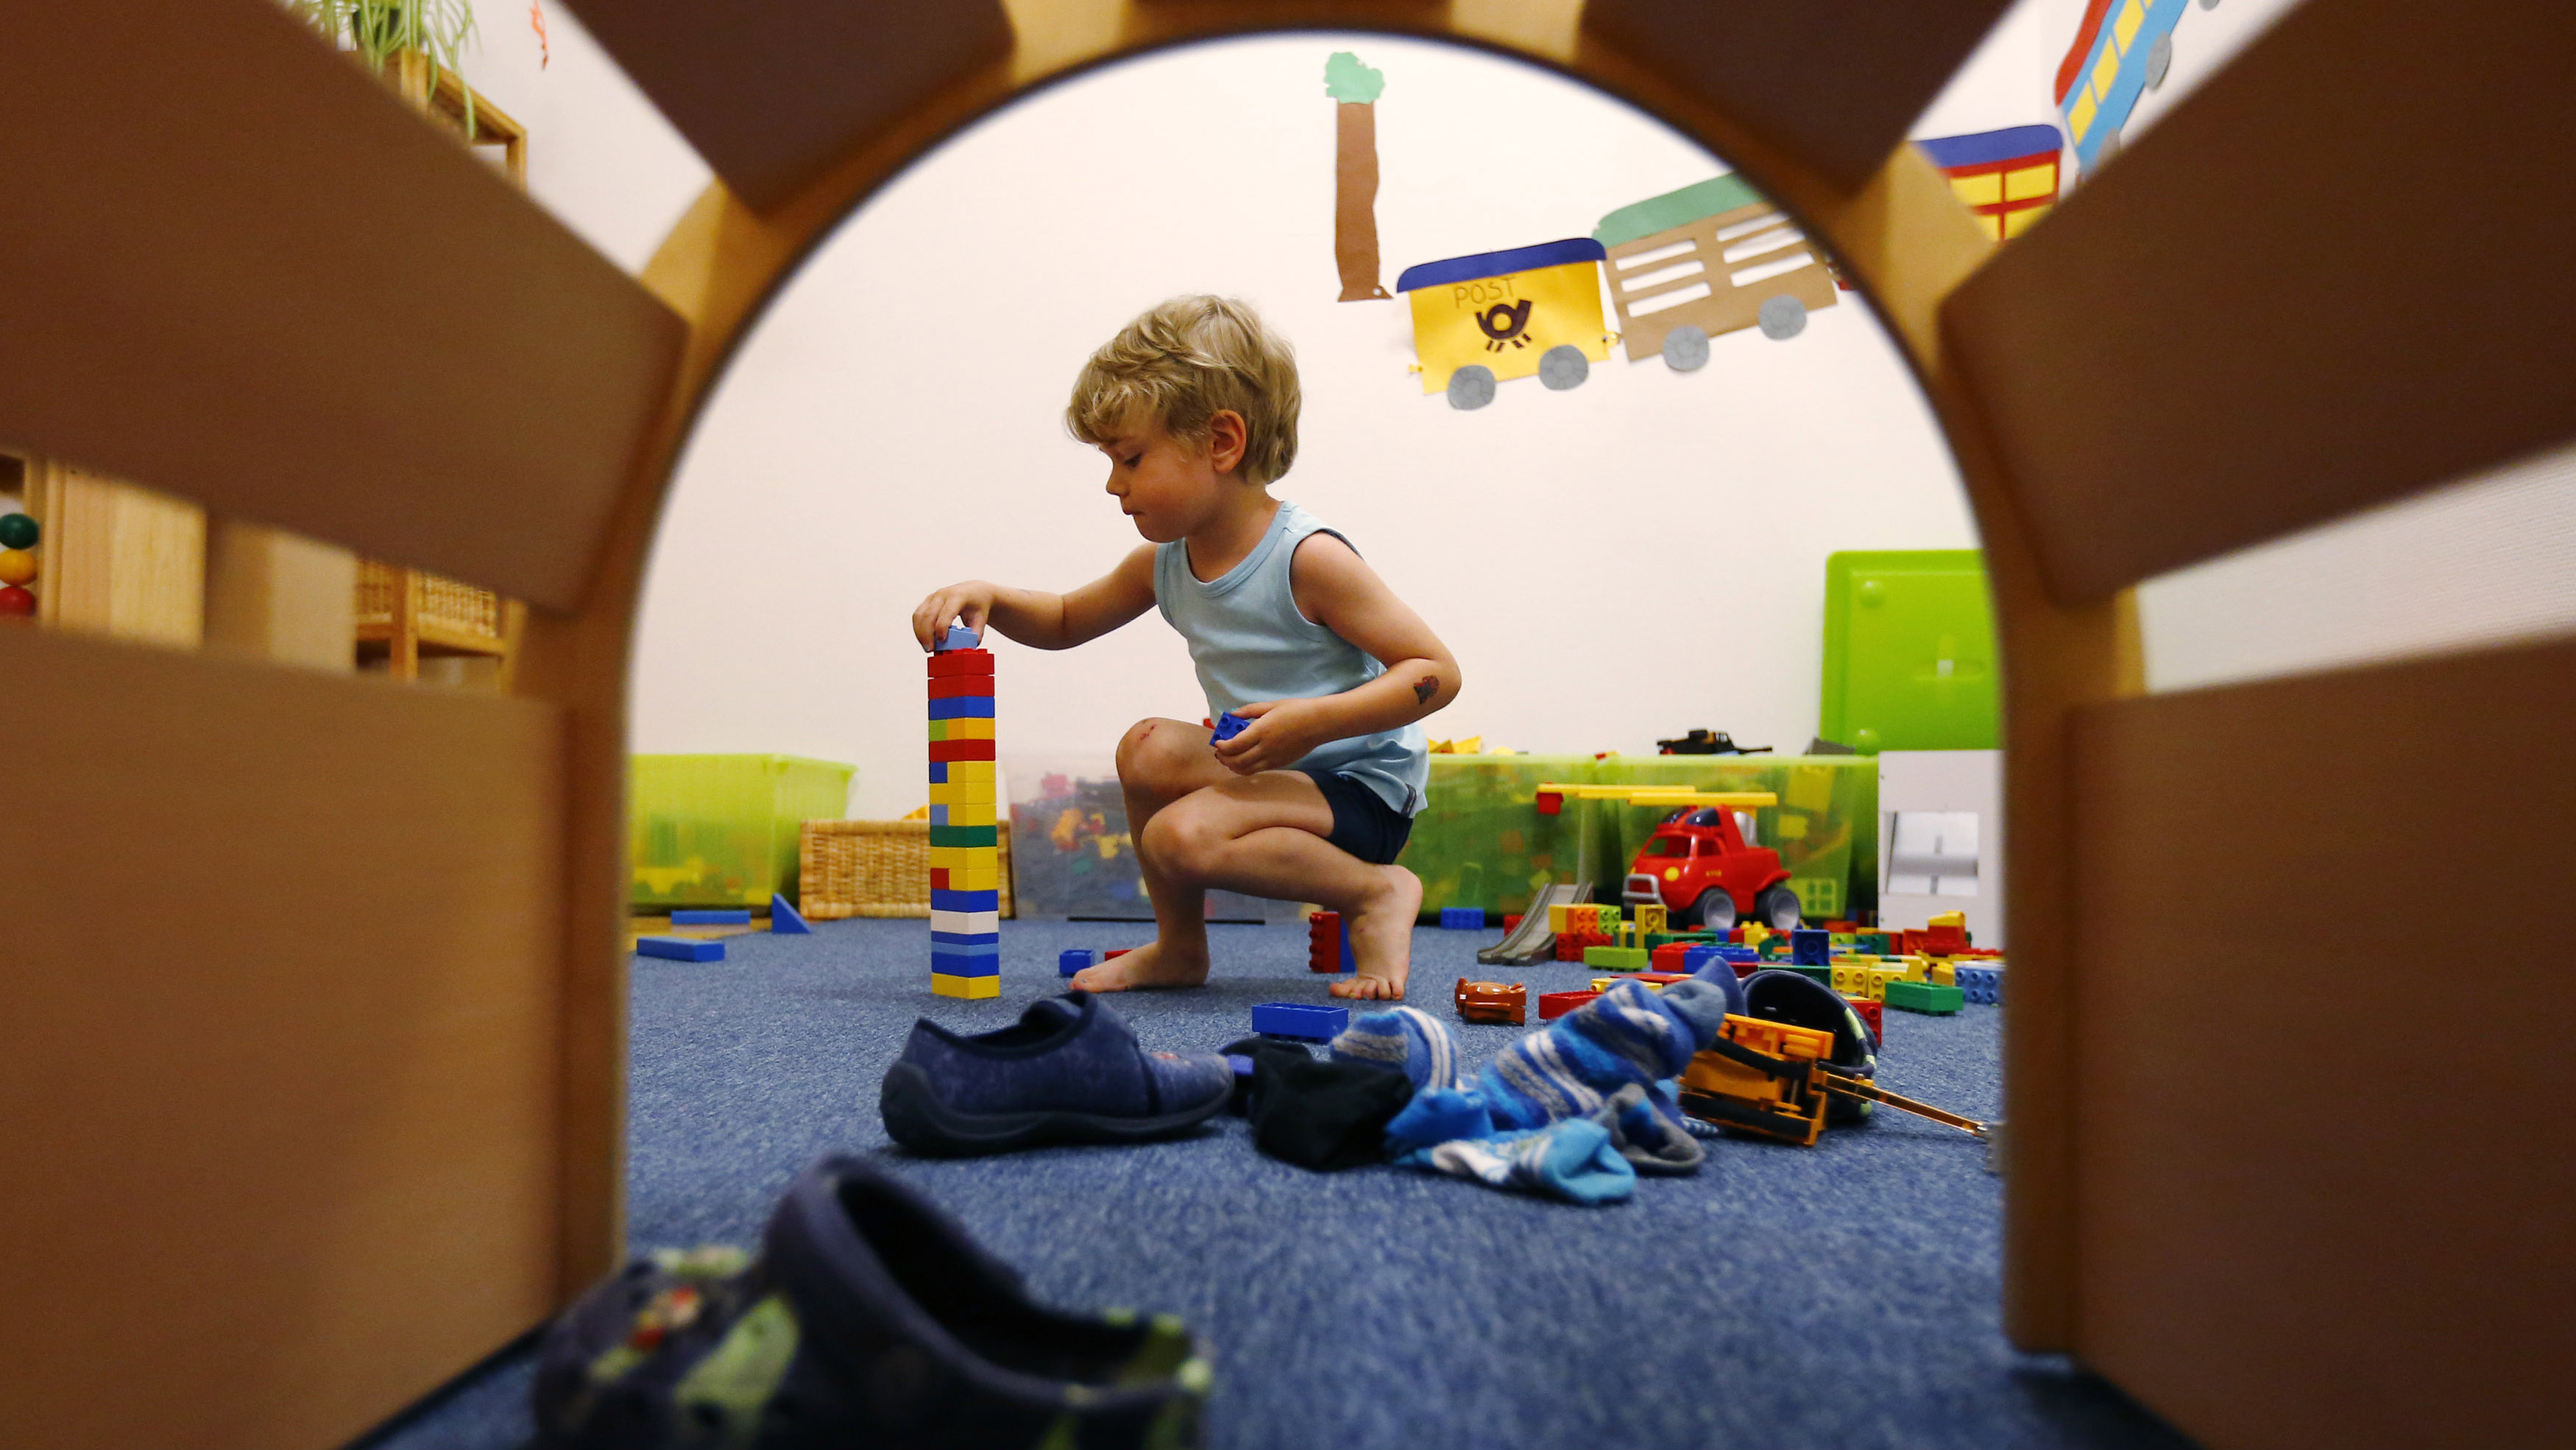 A four year-old boy plays at the Kathinka-Platzhoff-Stiftung Kindergarten (Kathinka-Platzhoff-foundation kindergarden) in Hanau, 30km (18 miles) south of Frankfurt, July 16, 2013. From August 1, 2013, all children in Germany between the age of 1 and 3 will have a legal entitlement to a place at a kindergarten. The Kindergarten of the Kathinka-Platzhoff-Stiftung is one of few which hosts children between the age of six month and six years. Picture taken July 16. REUTERS/Kai Pfaffenbach